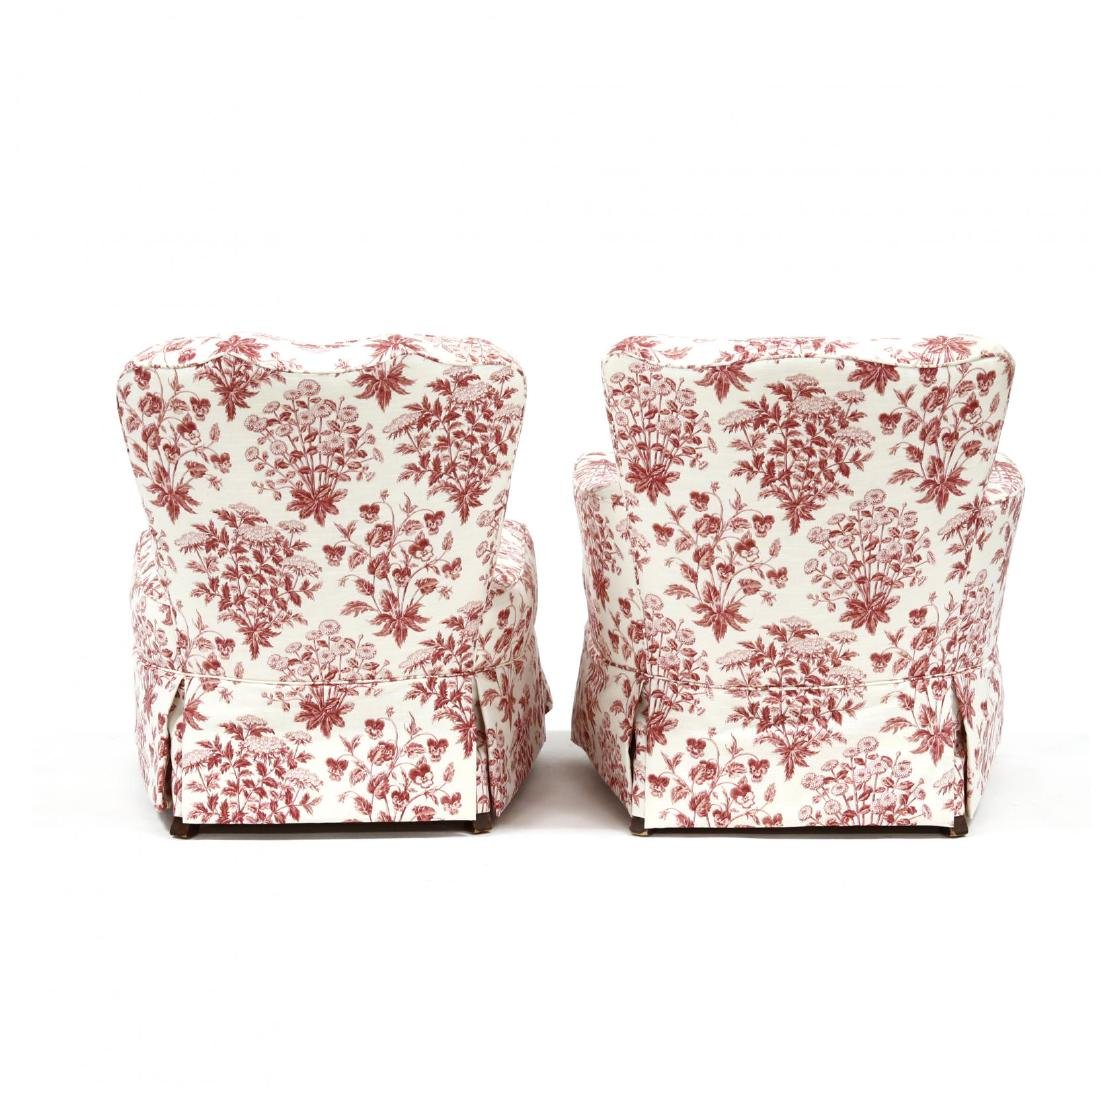 Two Vintage Over Upholstered Chairs - 4